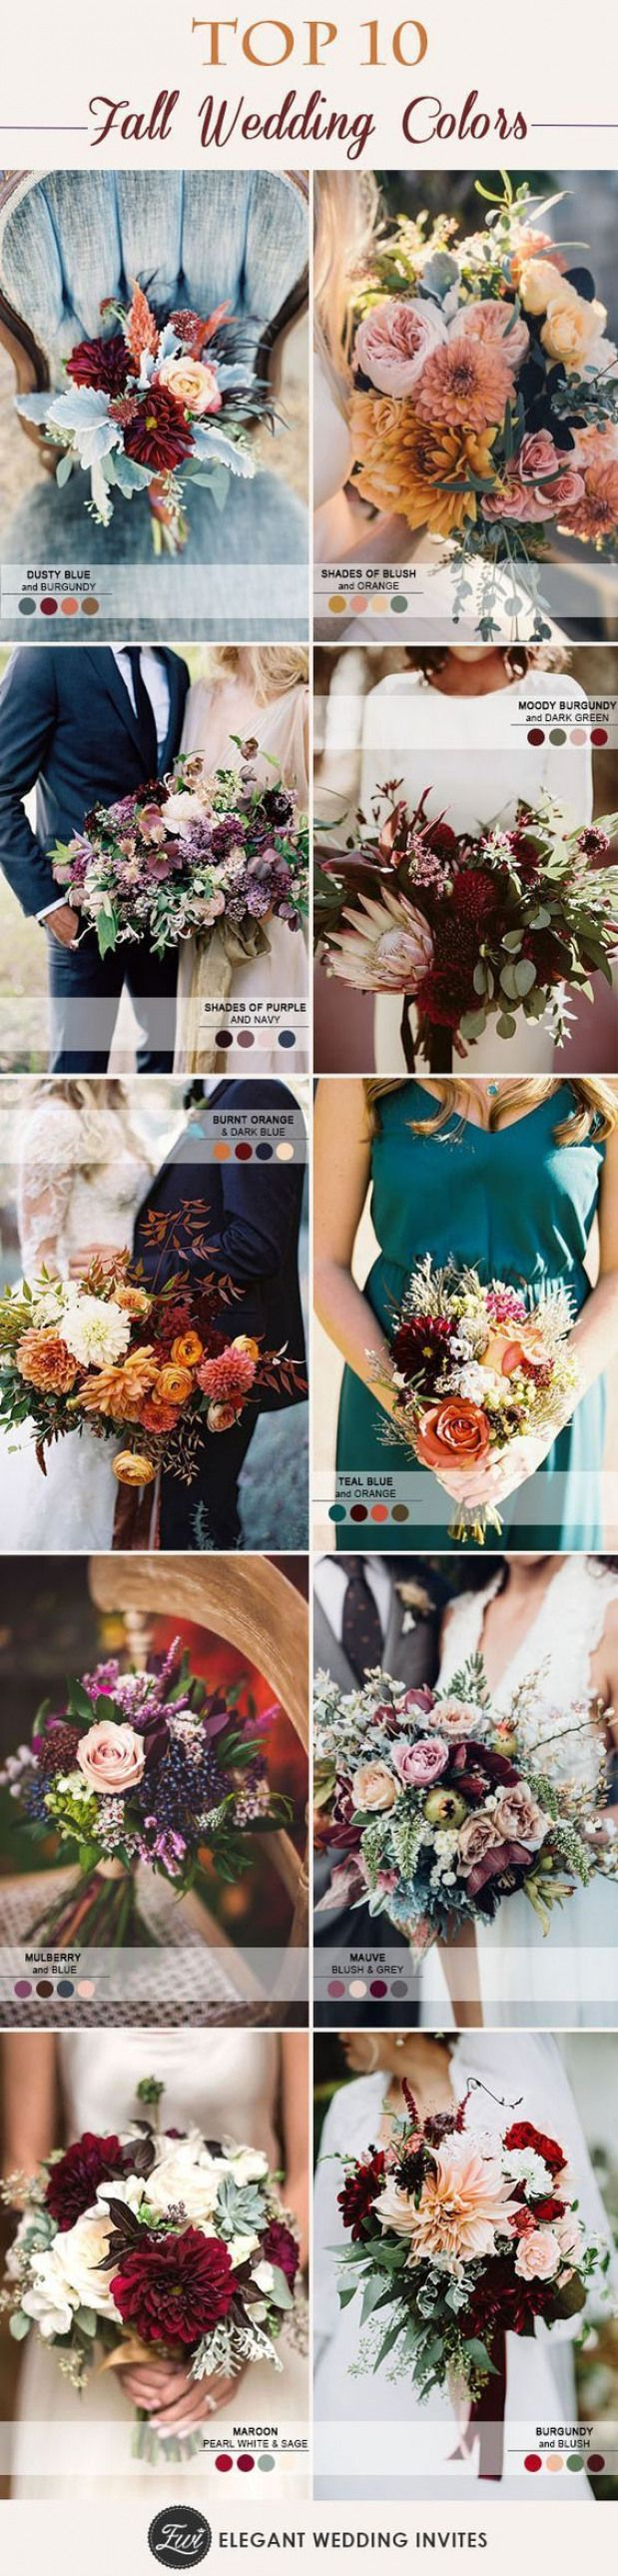 Copy this 80 fall wedding colors inspirations 7 #fallwedding #country #fall #wed…